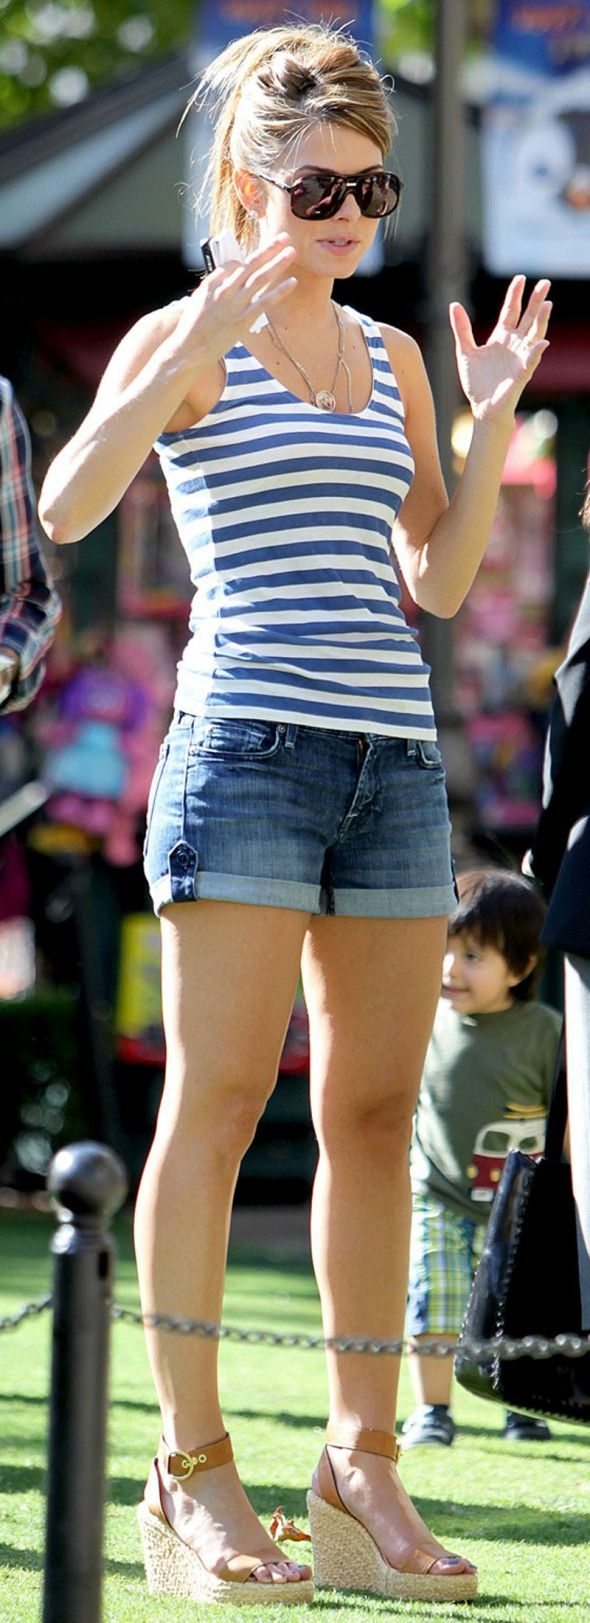 maria menounos - this is a cute outfit!